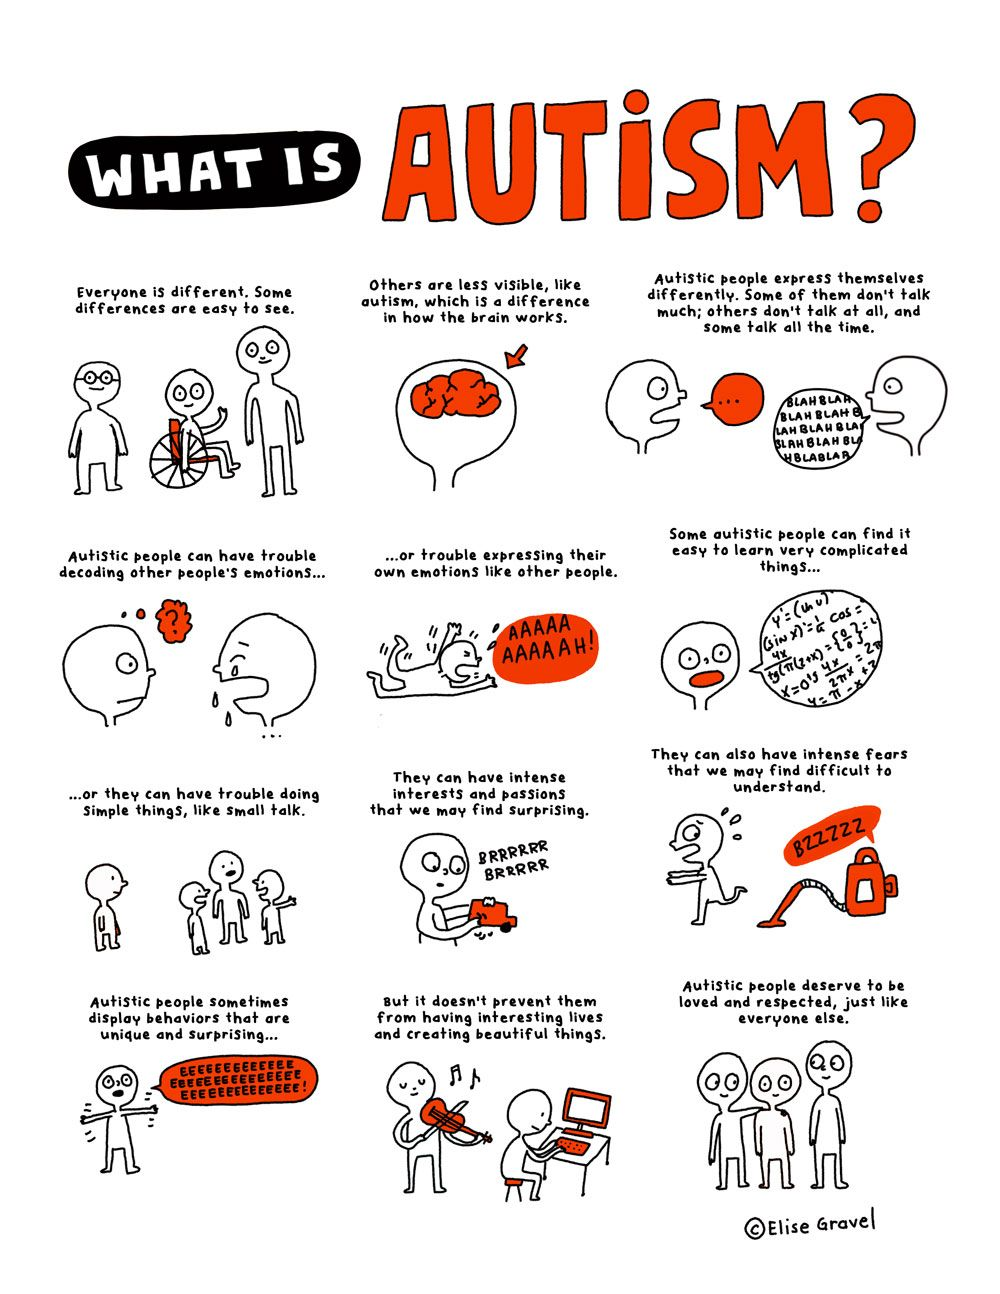 What is autism? | Elise Gravel